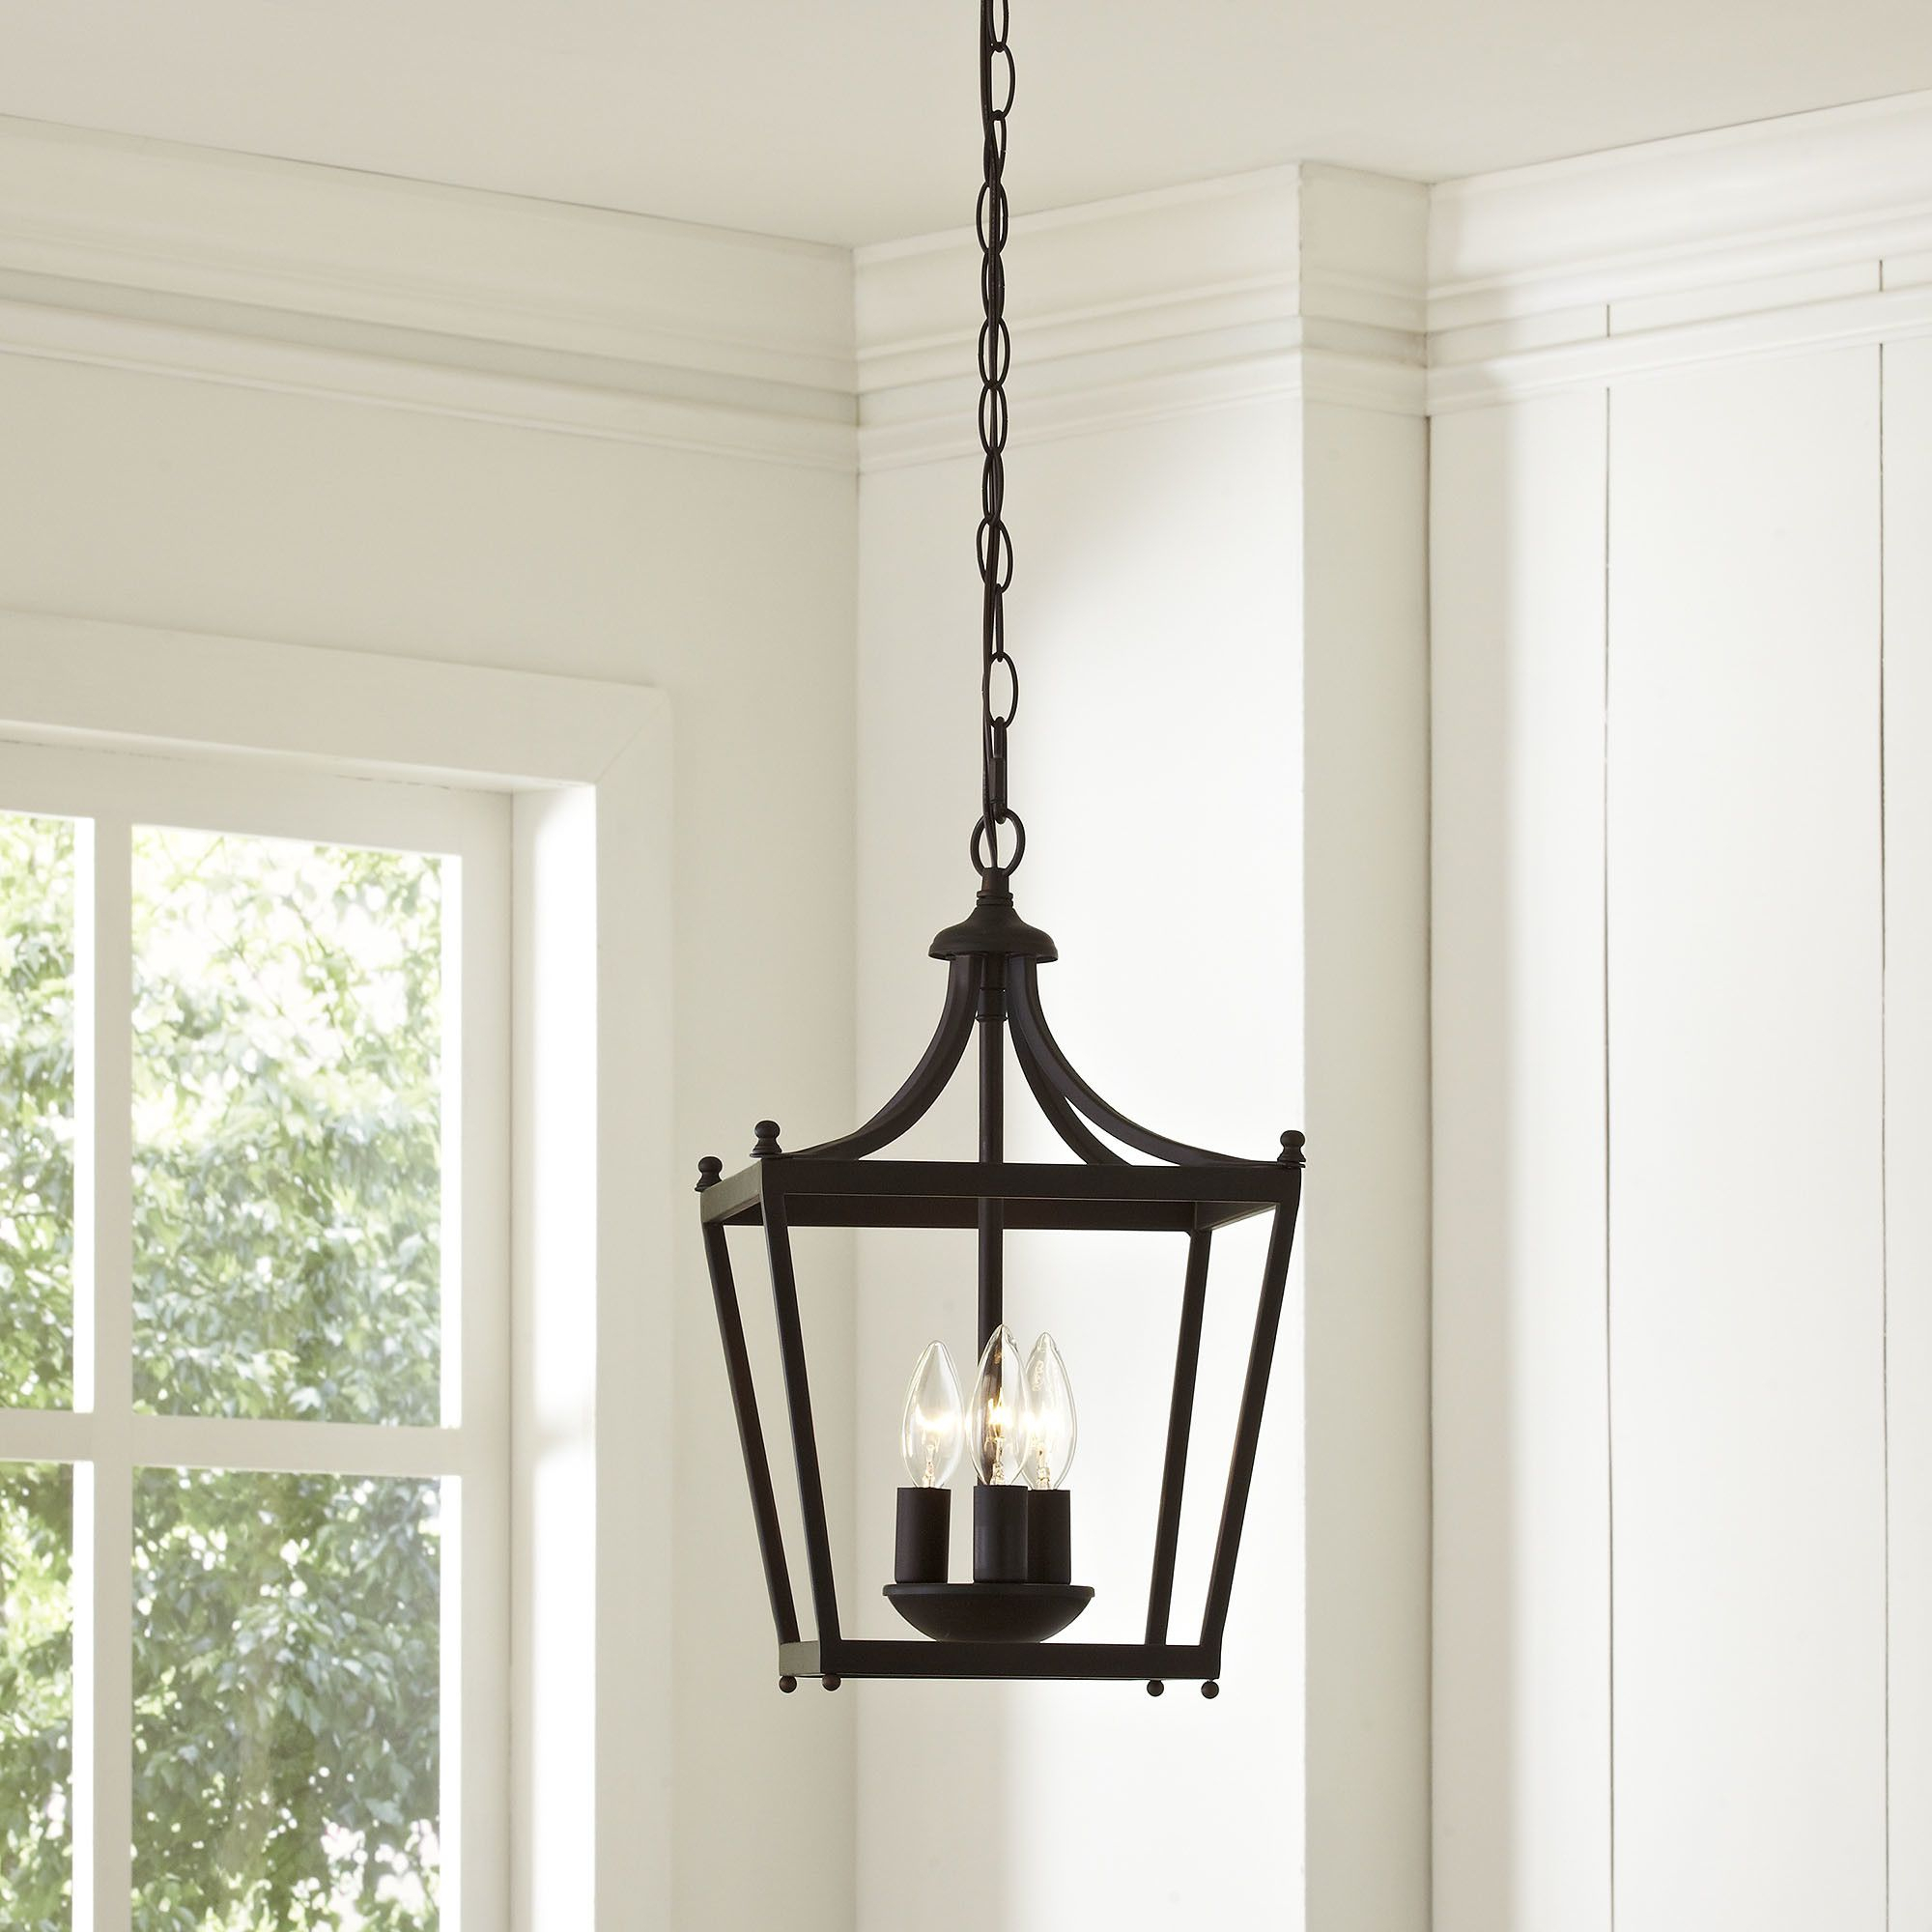 Gabriella 3 Light Lantern Chandelier | Let There Be Light Intended For Gabriella 3 Light Lantern Chandeliers (View 9 of 30)